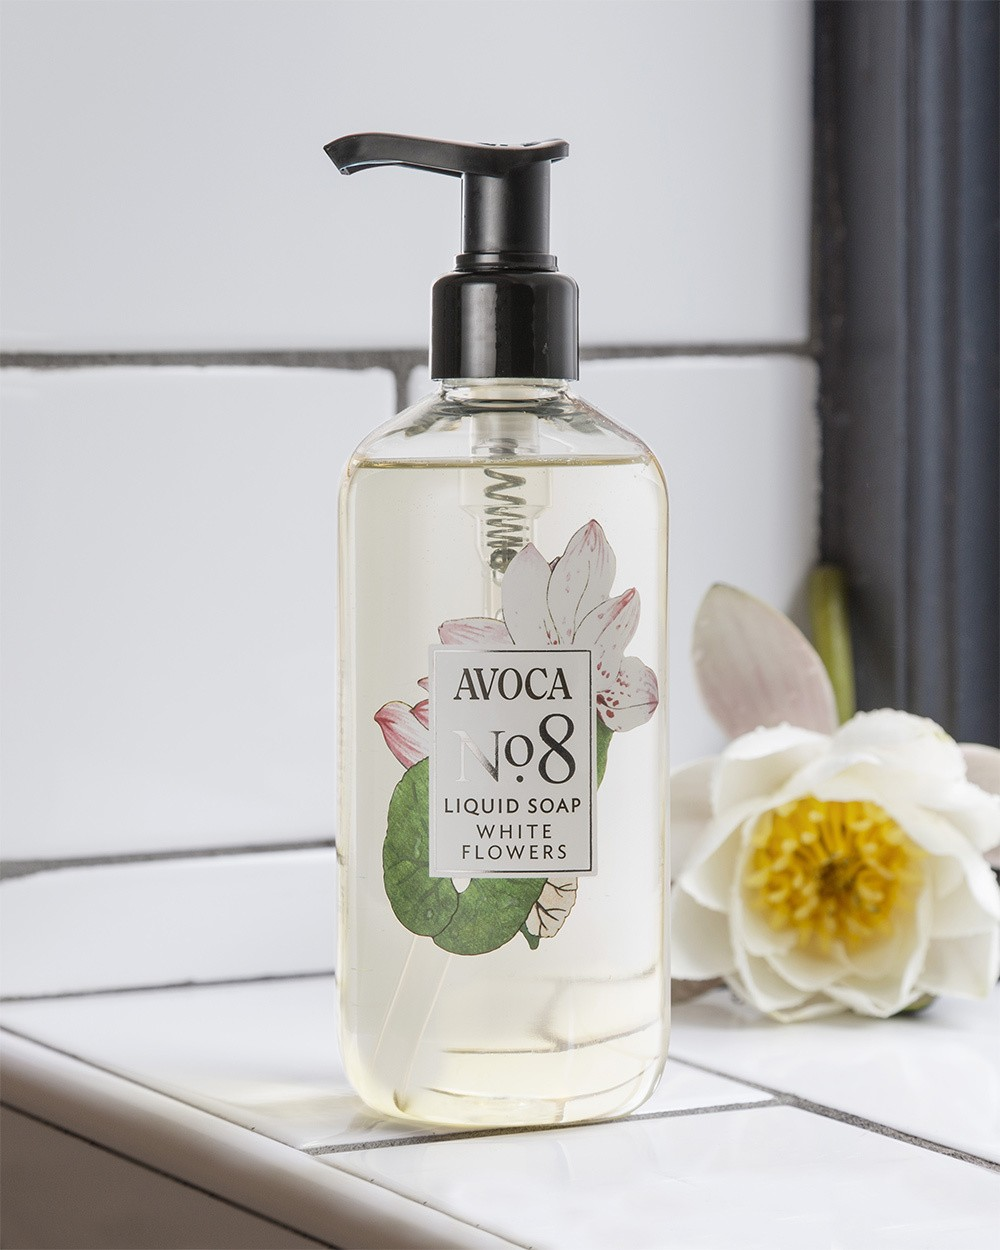 Avoca No 8 Liquid Soap - White Flowers